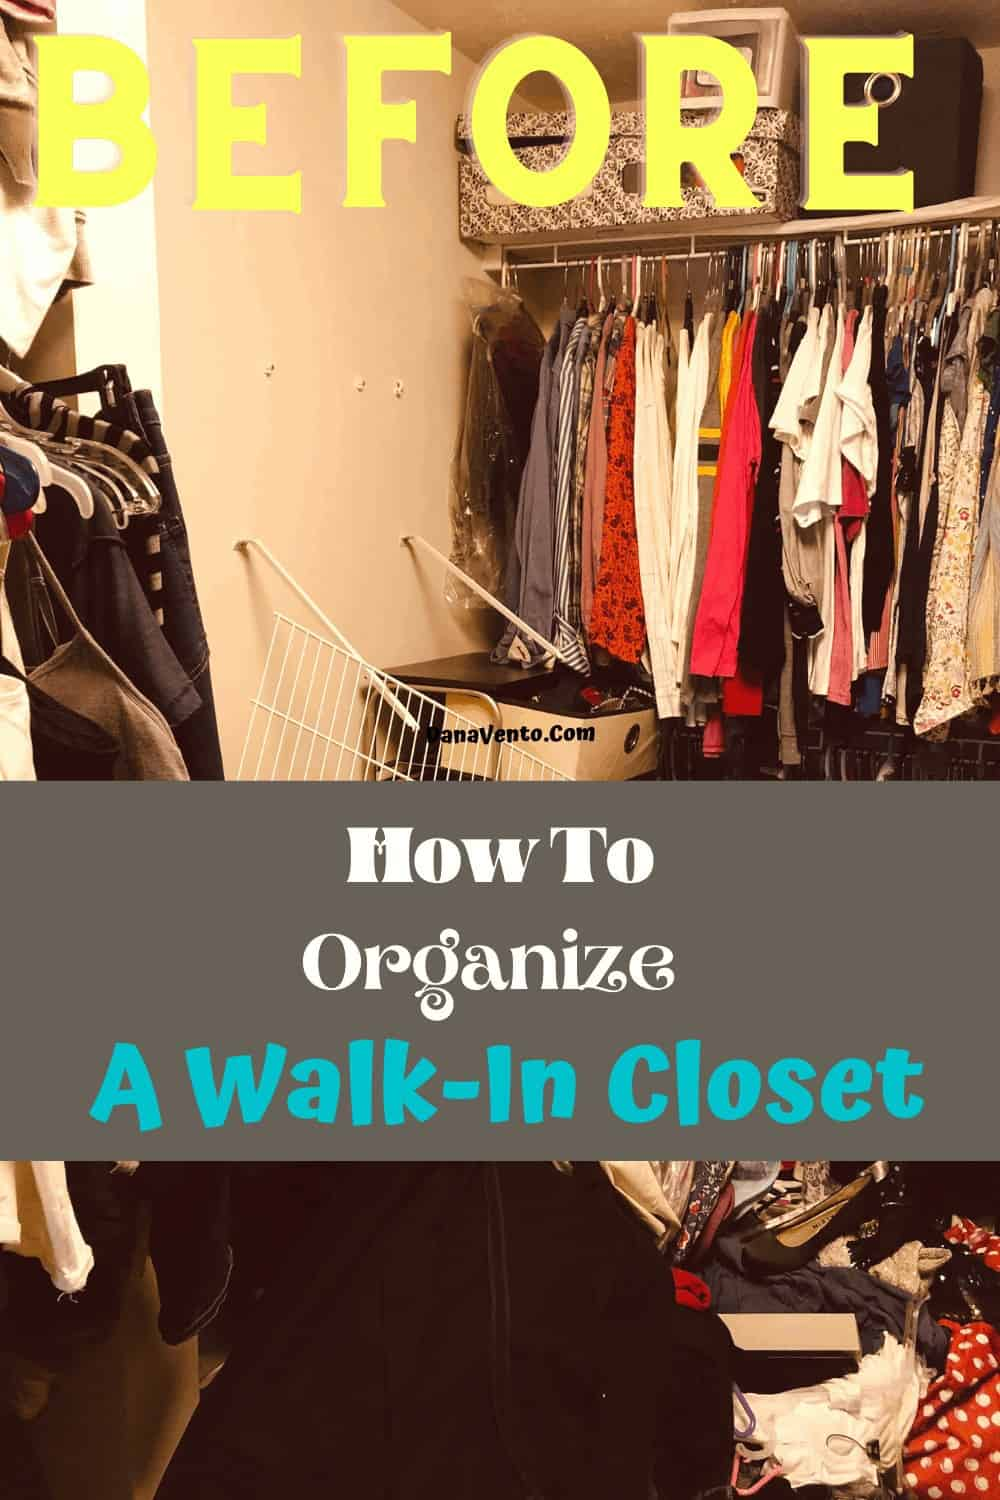 Wire racks are ineffective and fell off the wall. A solid wood closet system solves this issue